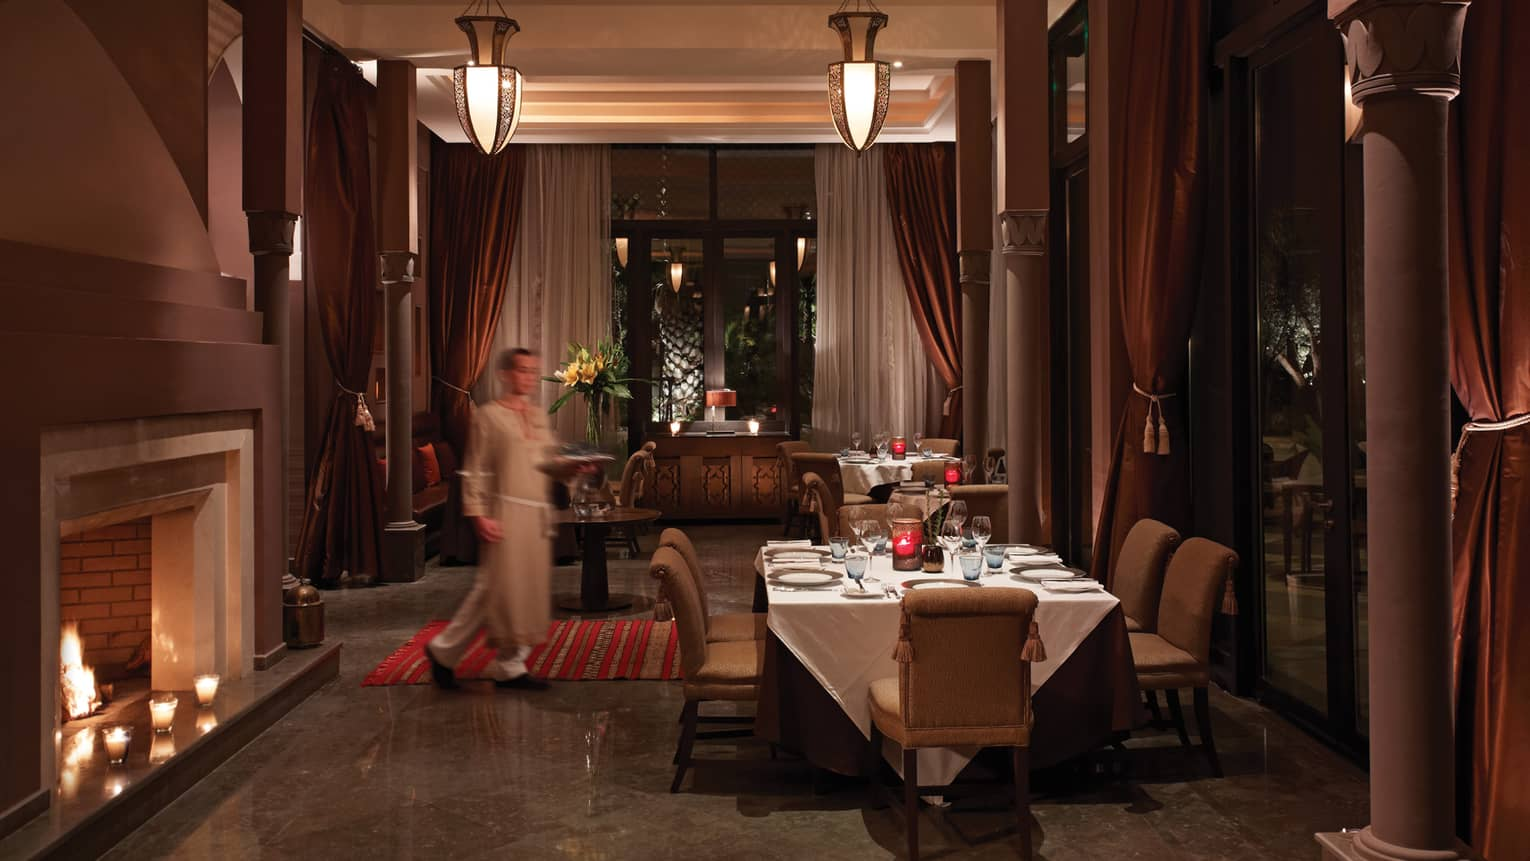 Arancino room, staff carries tray towards private dining table by fireplace